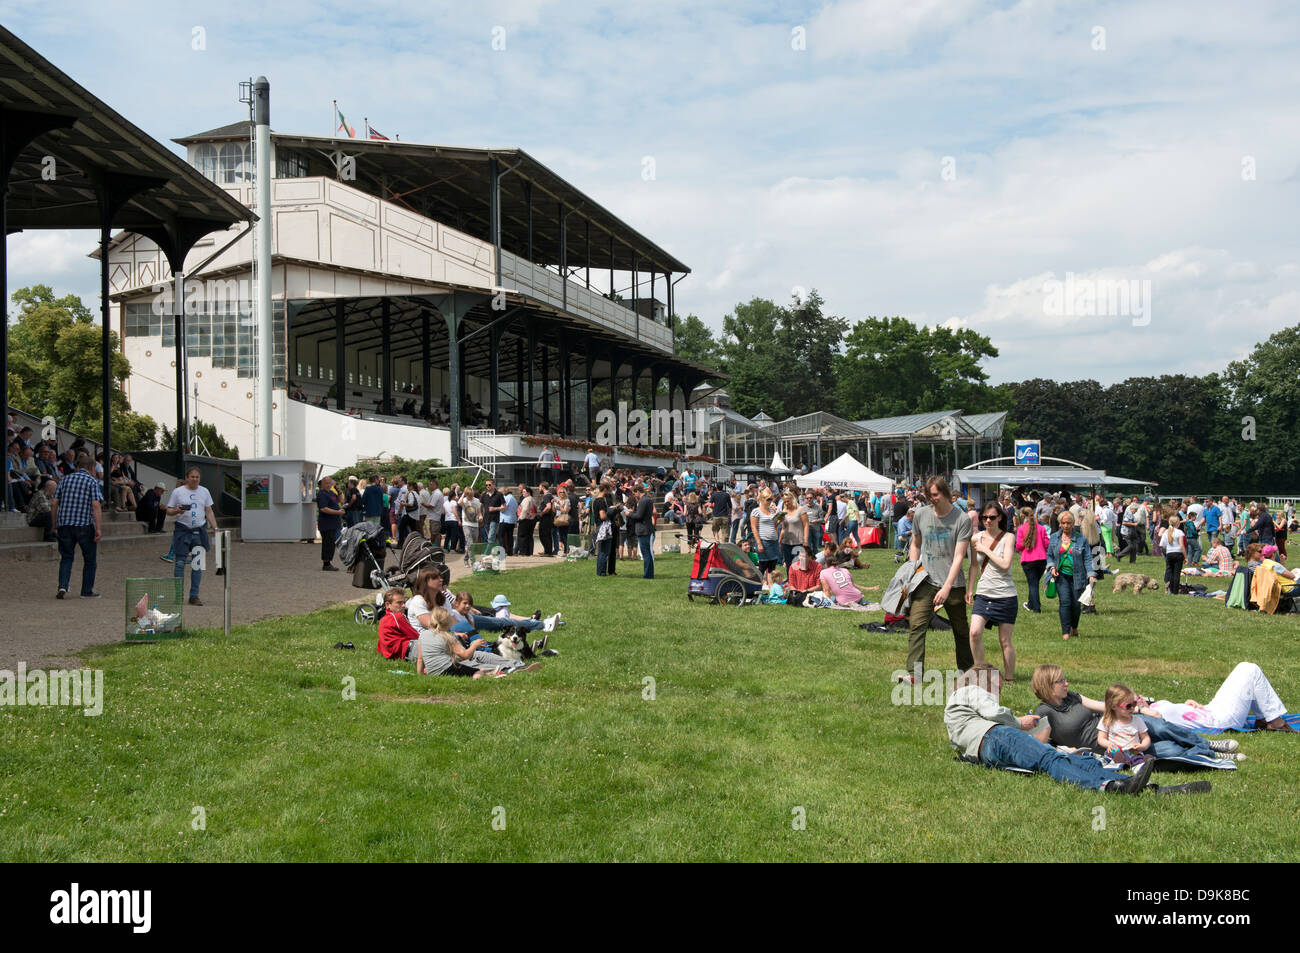 Hippodrome de Cologne Allemagne Photo Stock